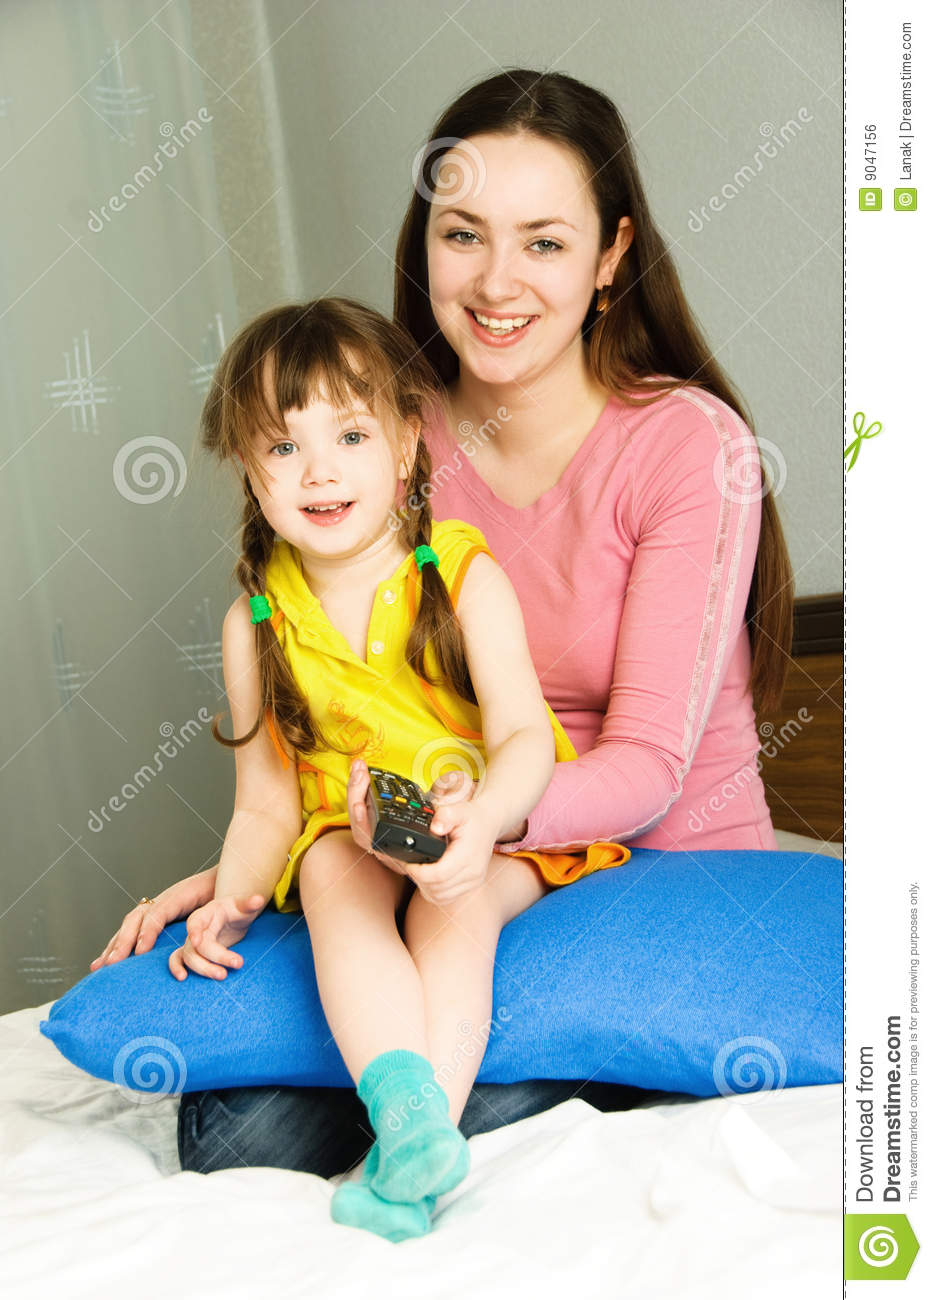 Watch Mom In Bedroom Camera: Mother And Daughter Watching TV Stock Photo